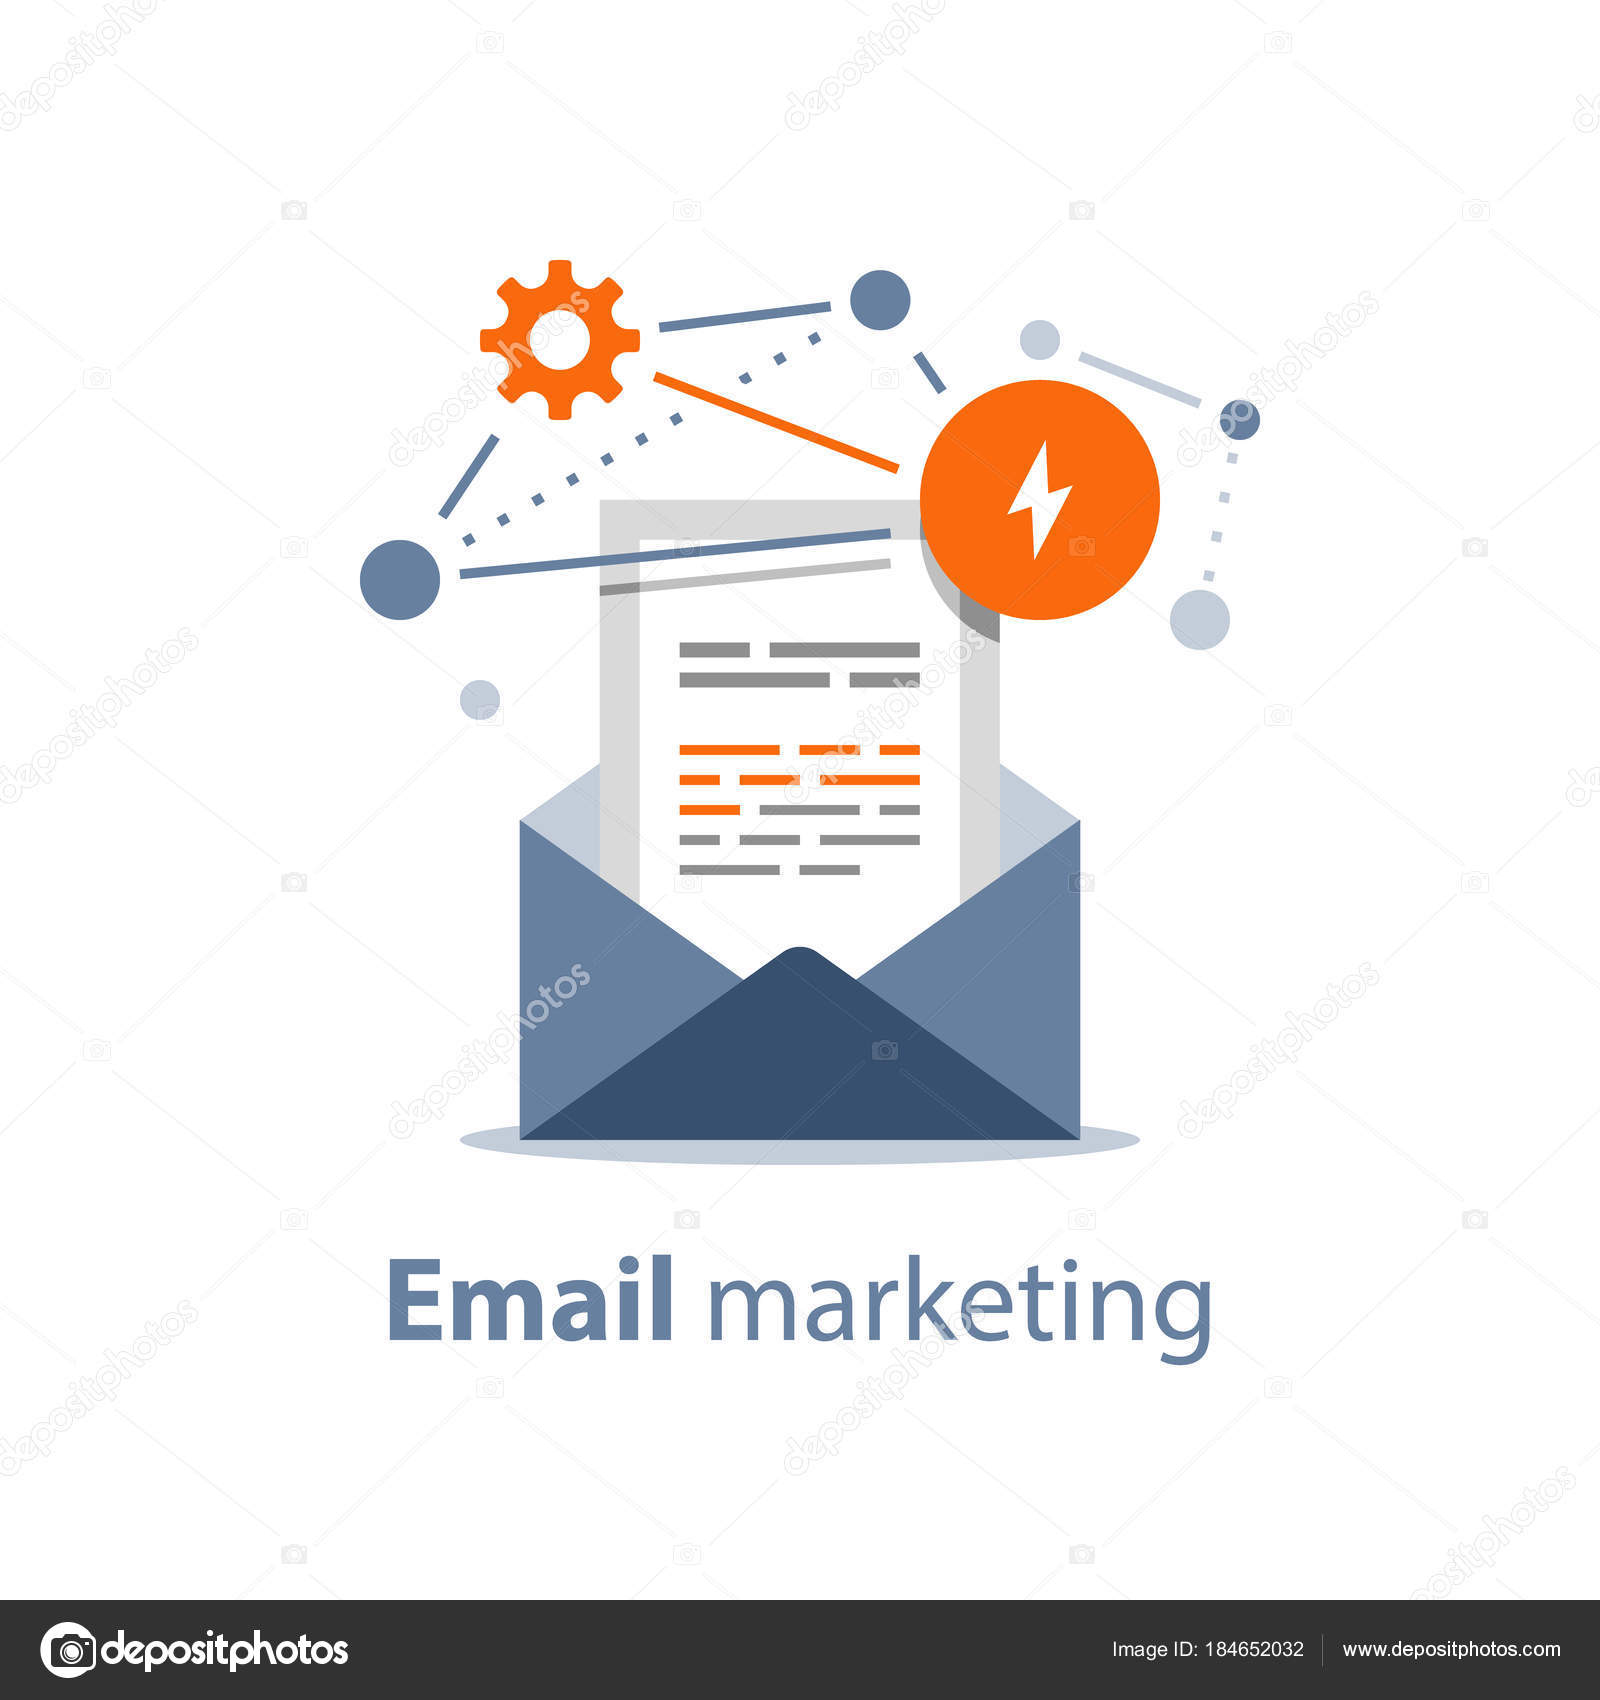 Stop Wasting Your Time with Complicated Email Marketing Services